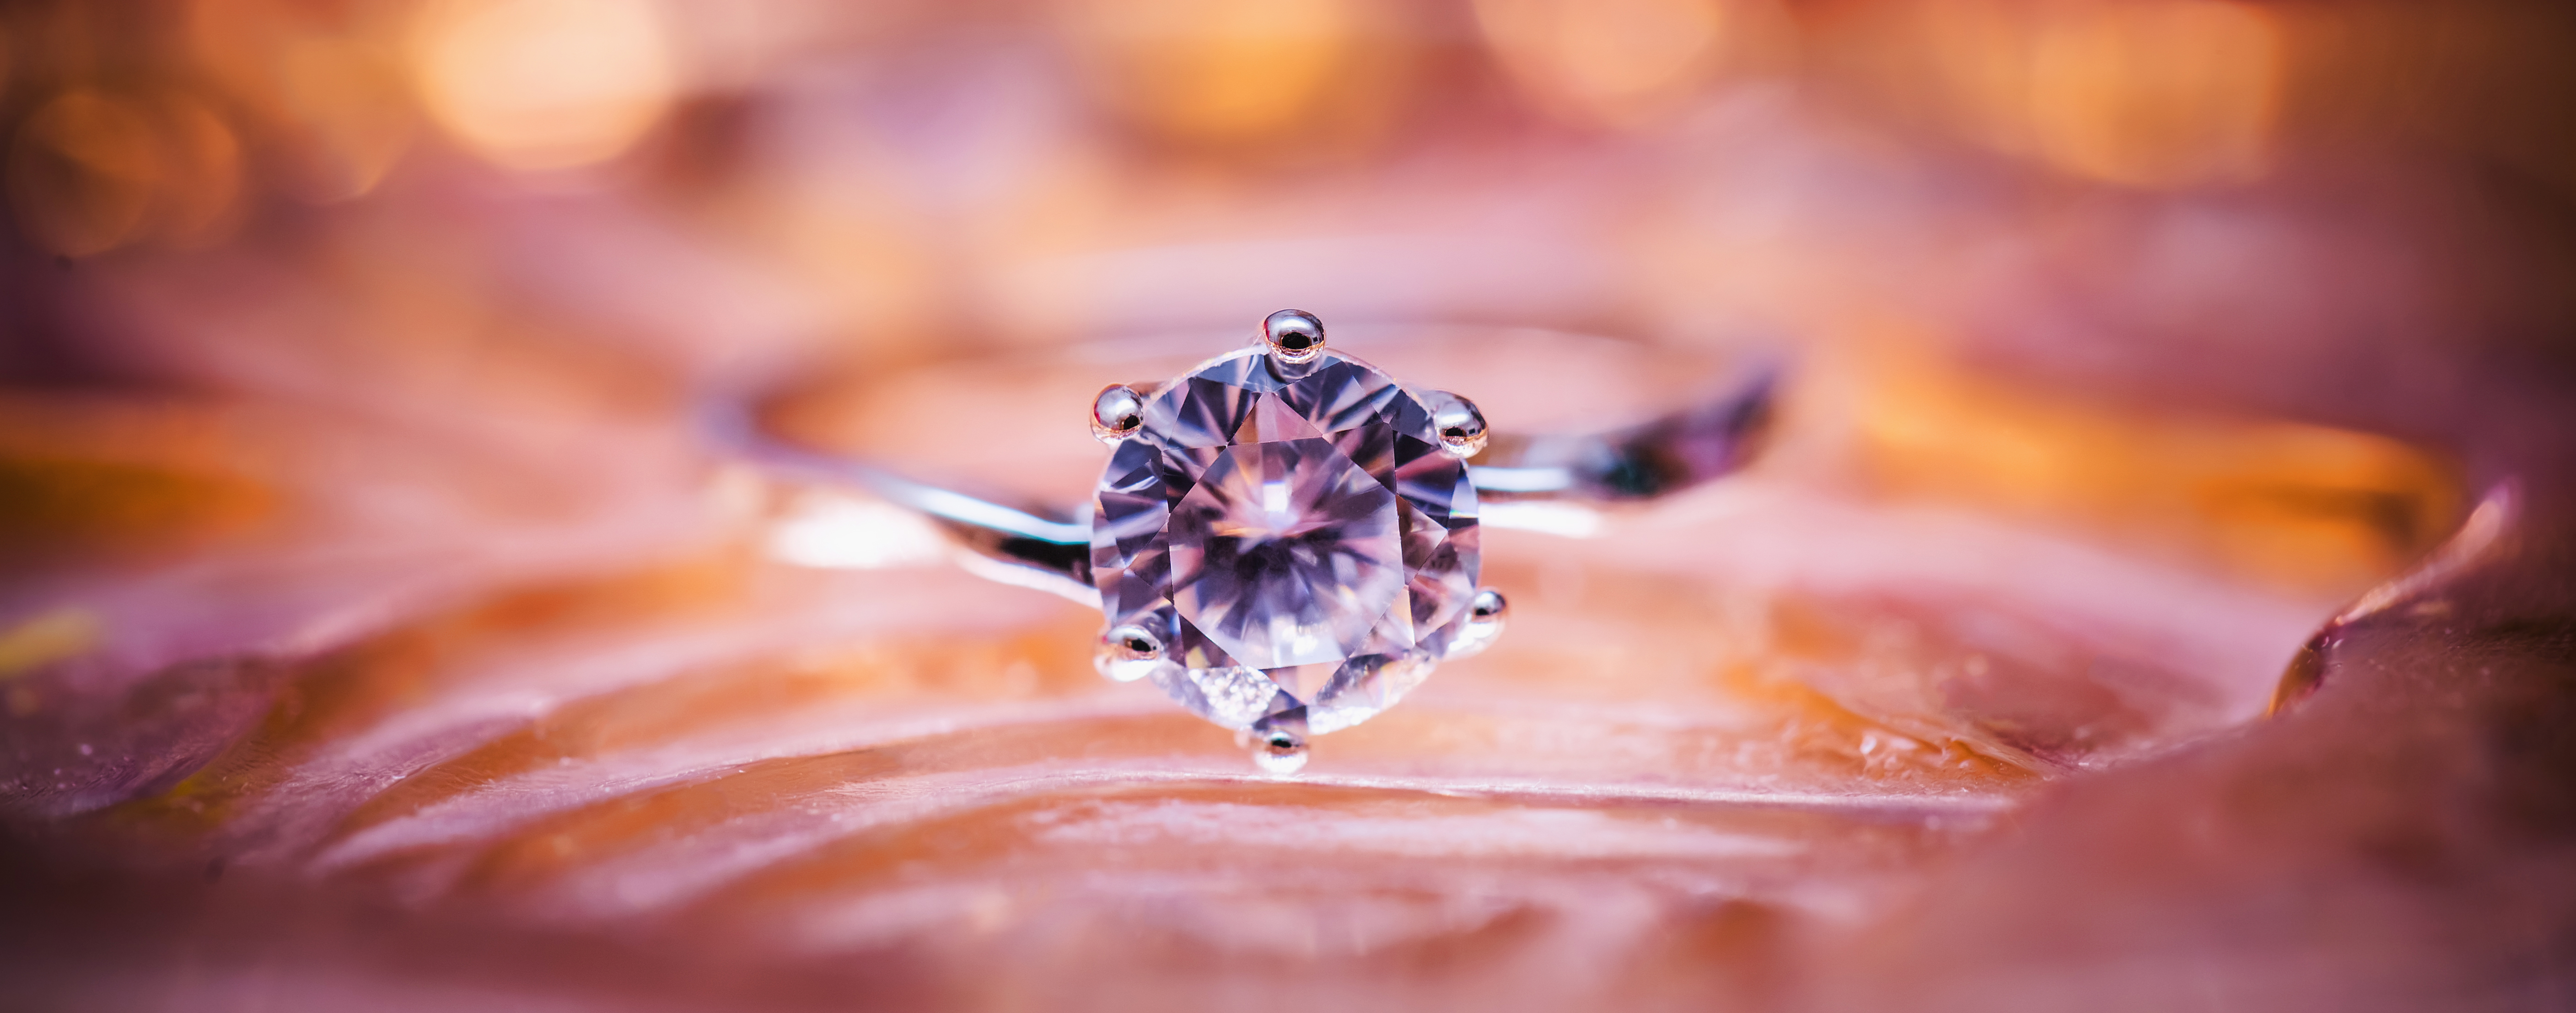 Close Up Photo of Grey and Diamond Ring